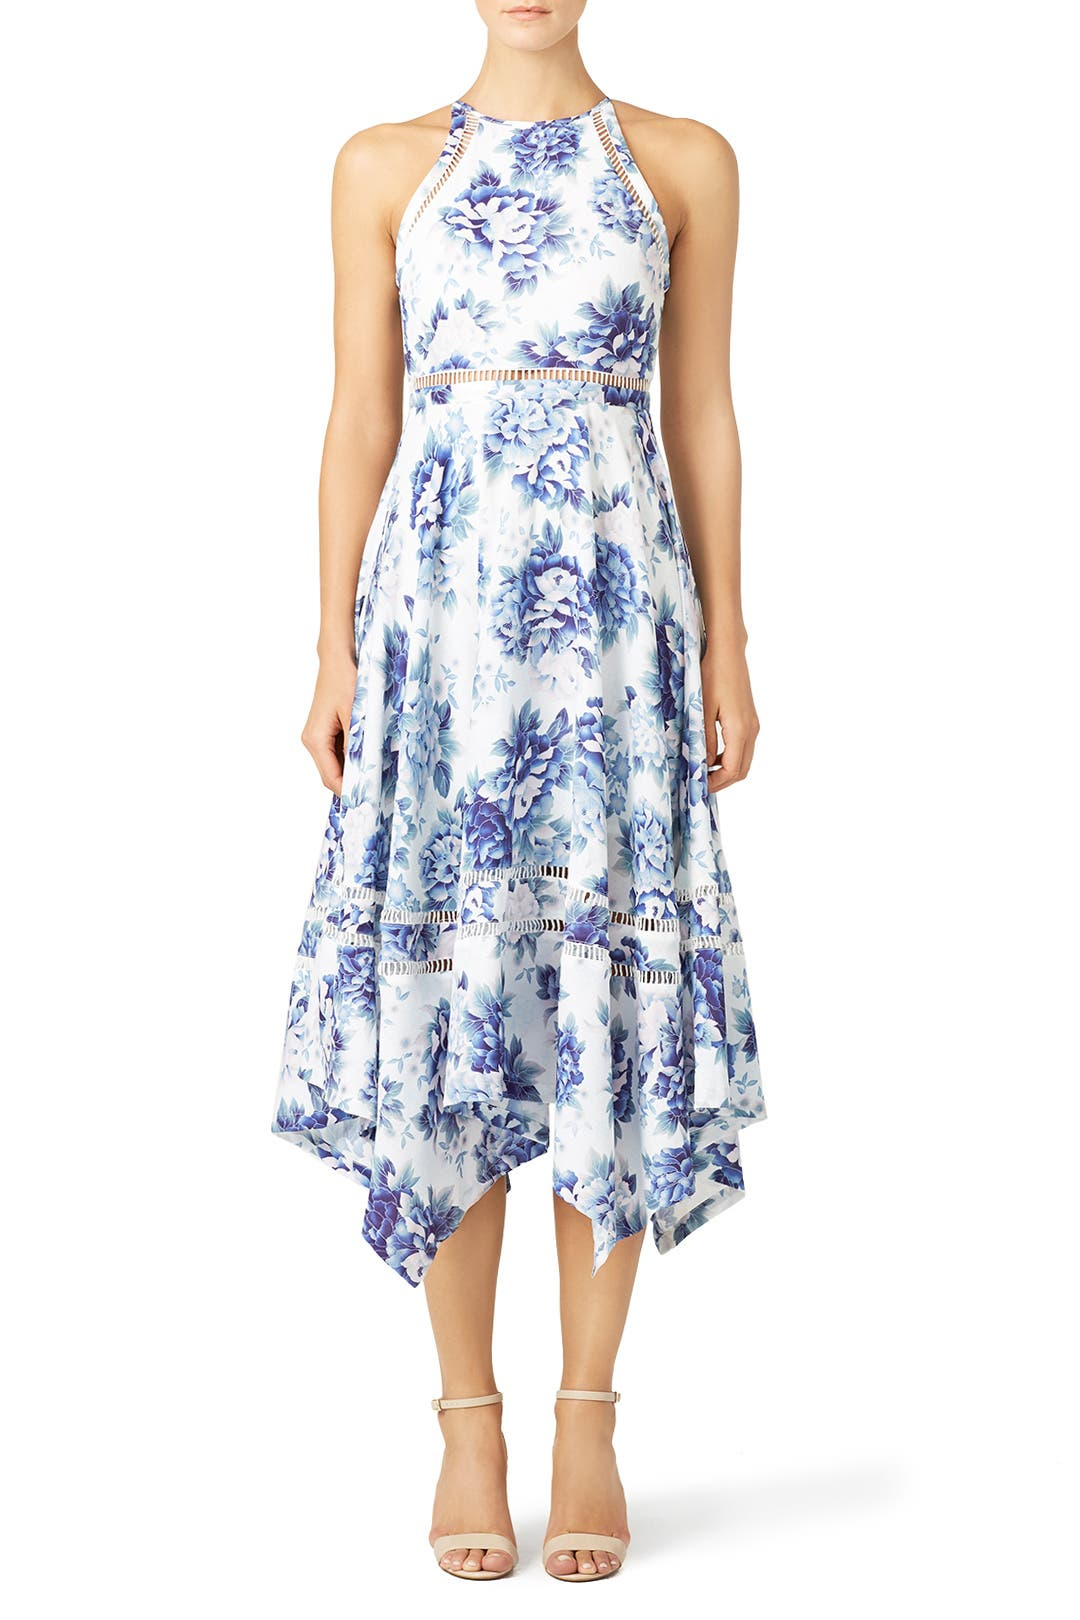 ELLIATT Porcelain Picnic Dress